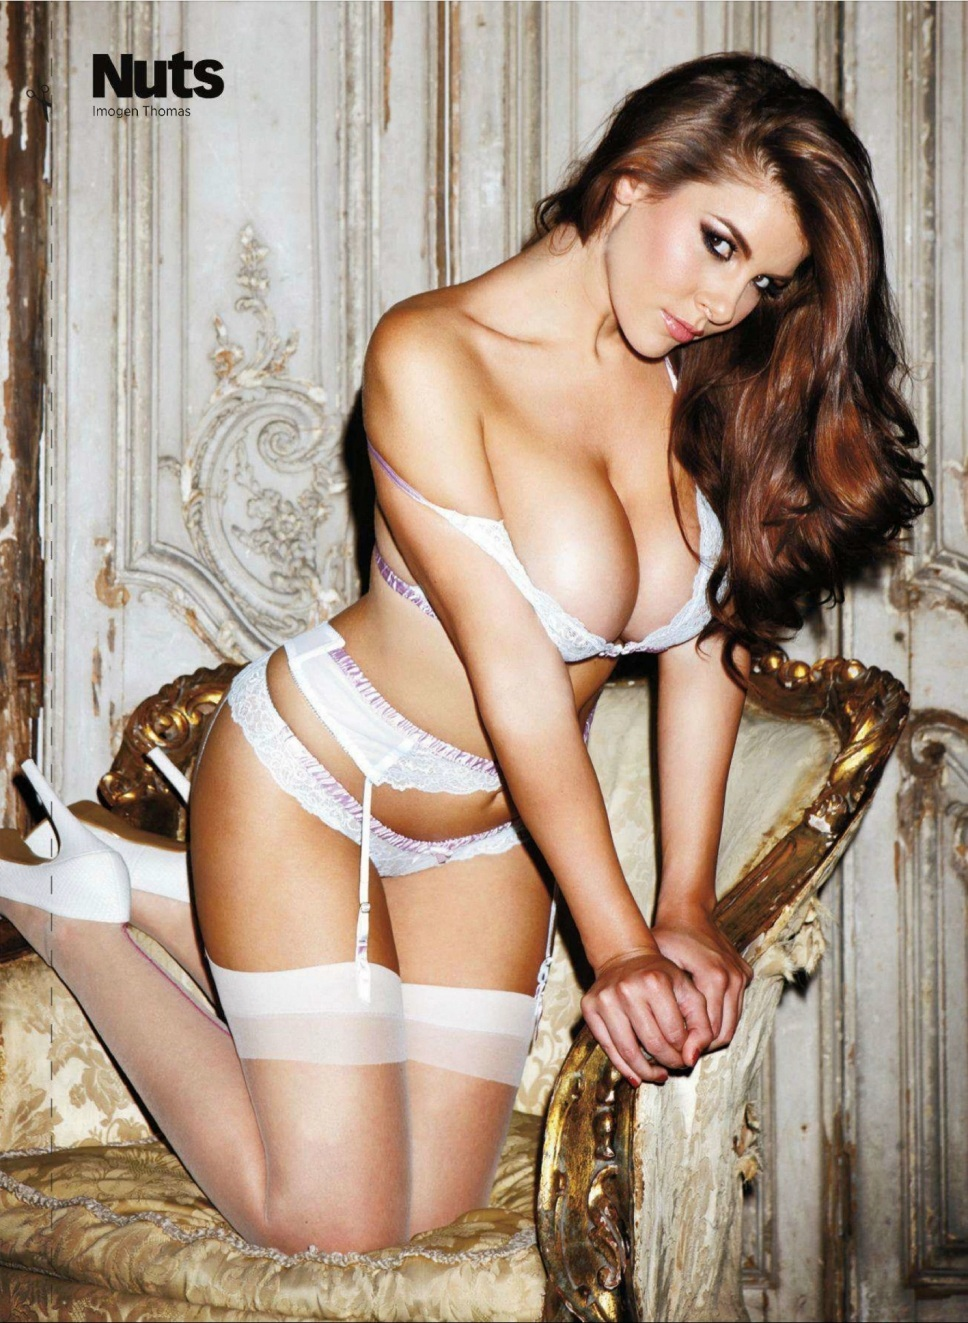 Full Imogen Thomas Tv